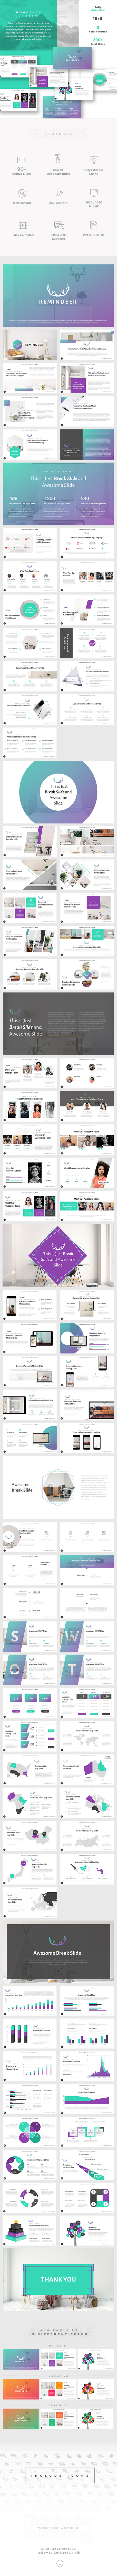 GraphicRiver Remindeer Creative Powerpoint Template 20770225